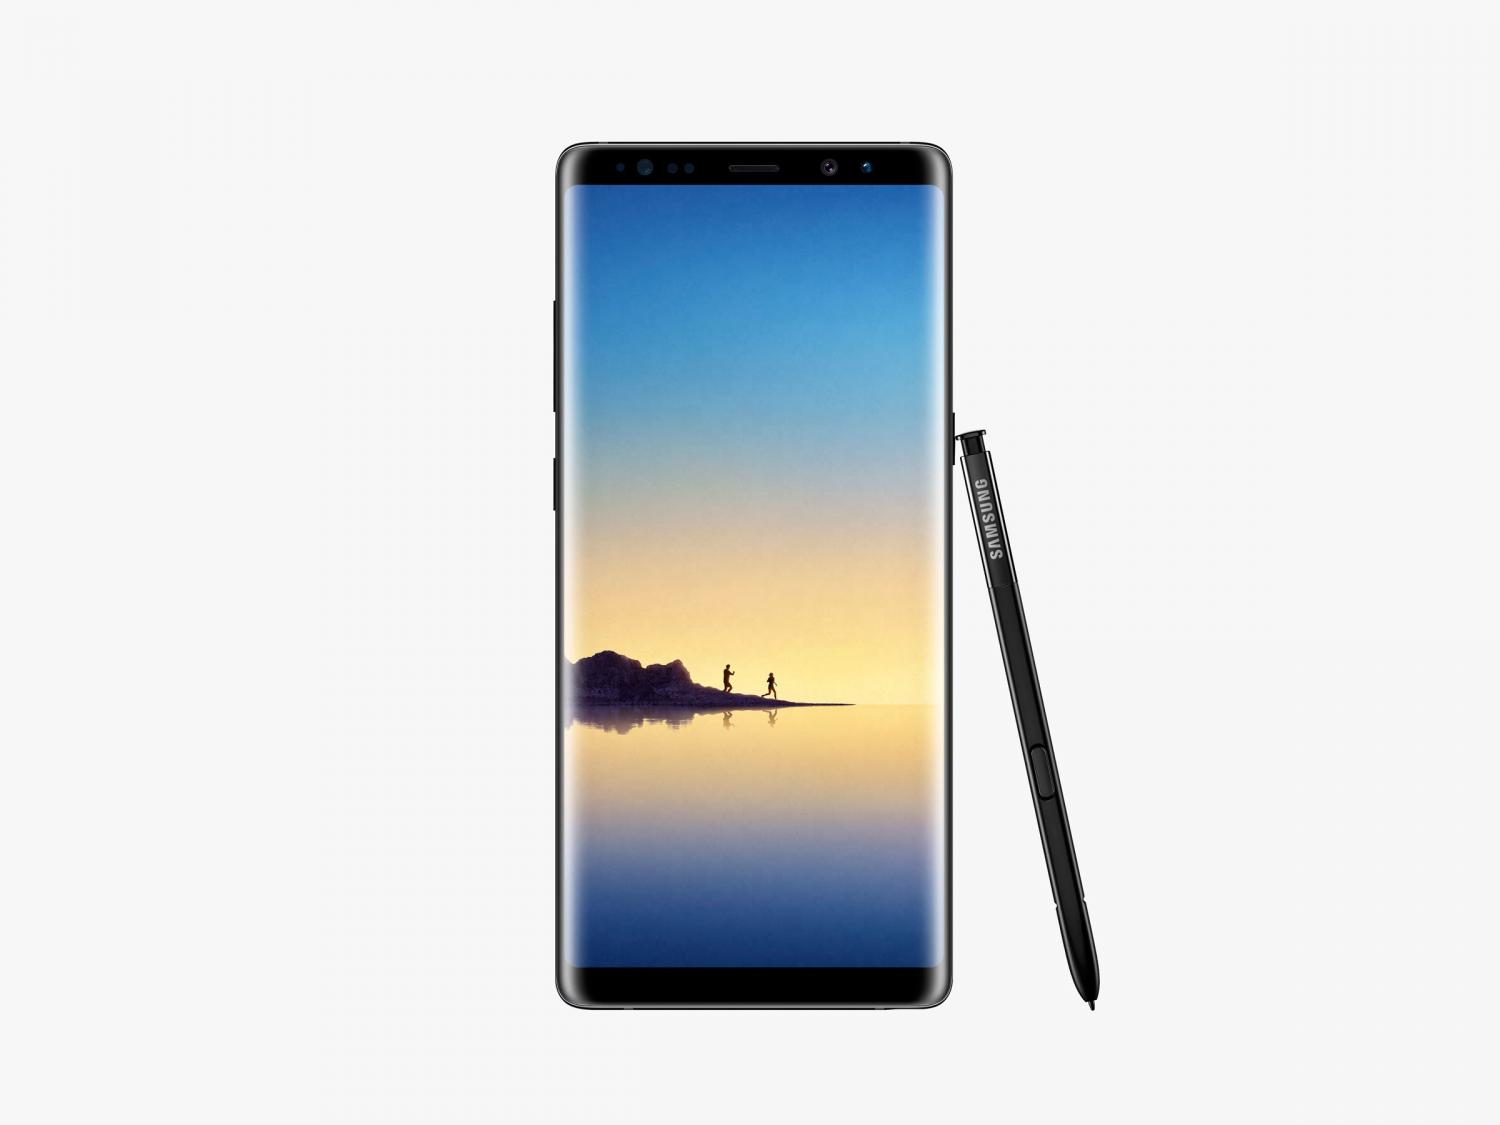 Samsung Galaxy Note 8 Launching Today: Everything We Know So Far